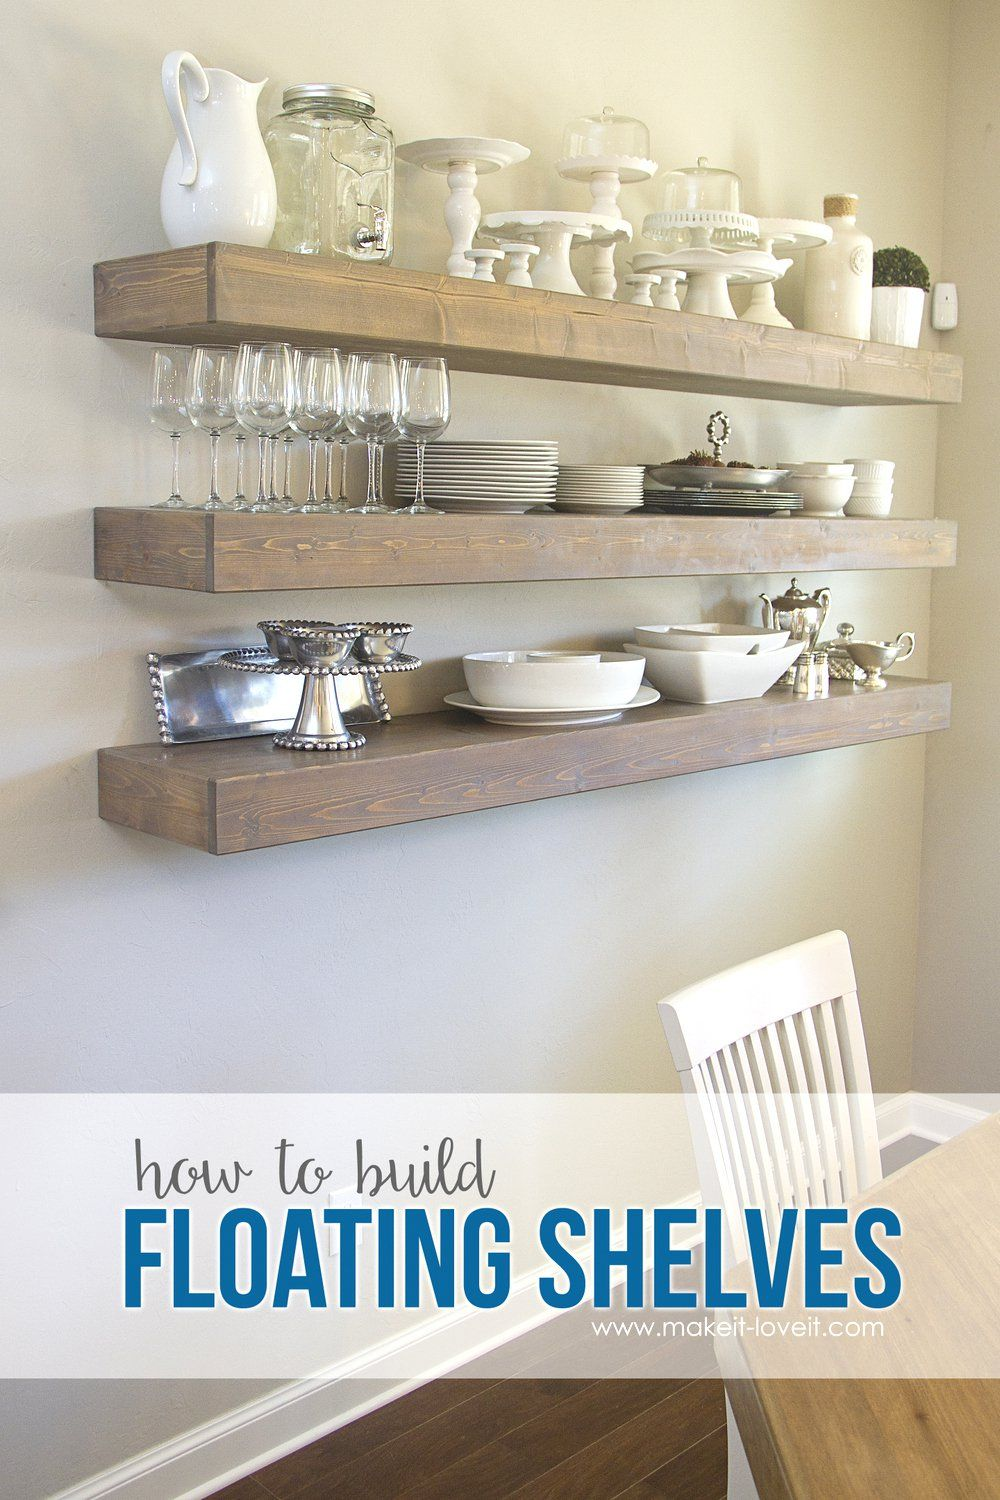 How To Build Simple Floating Shelves For Any Room In The House Via Make It And Love